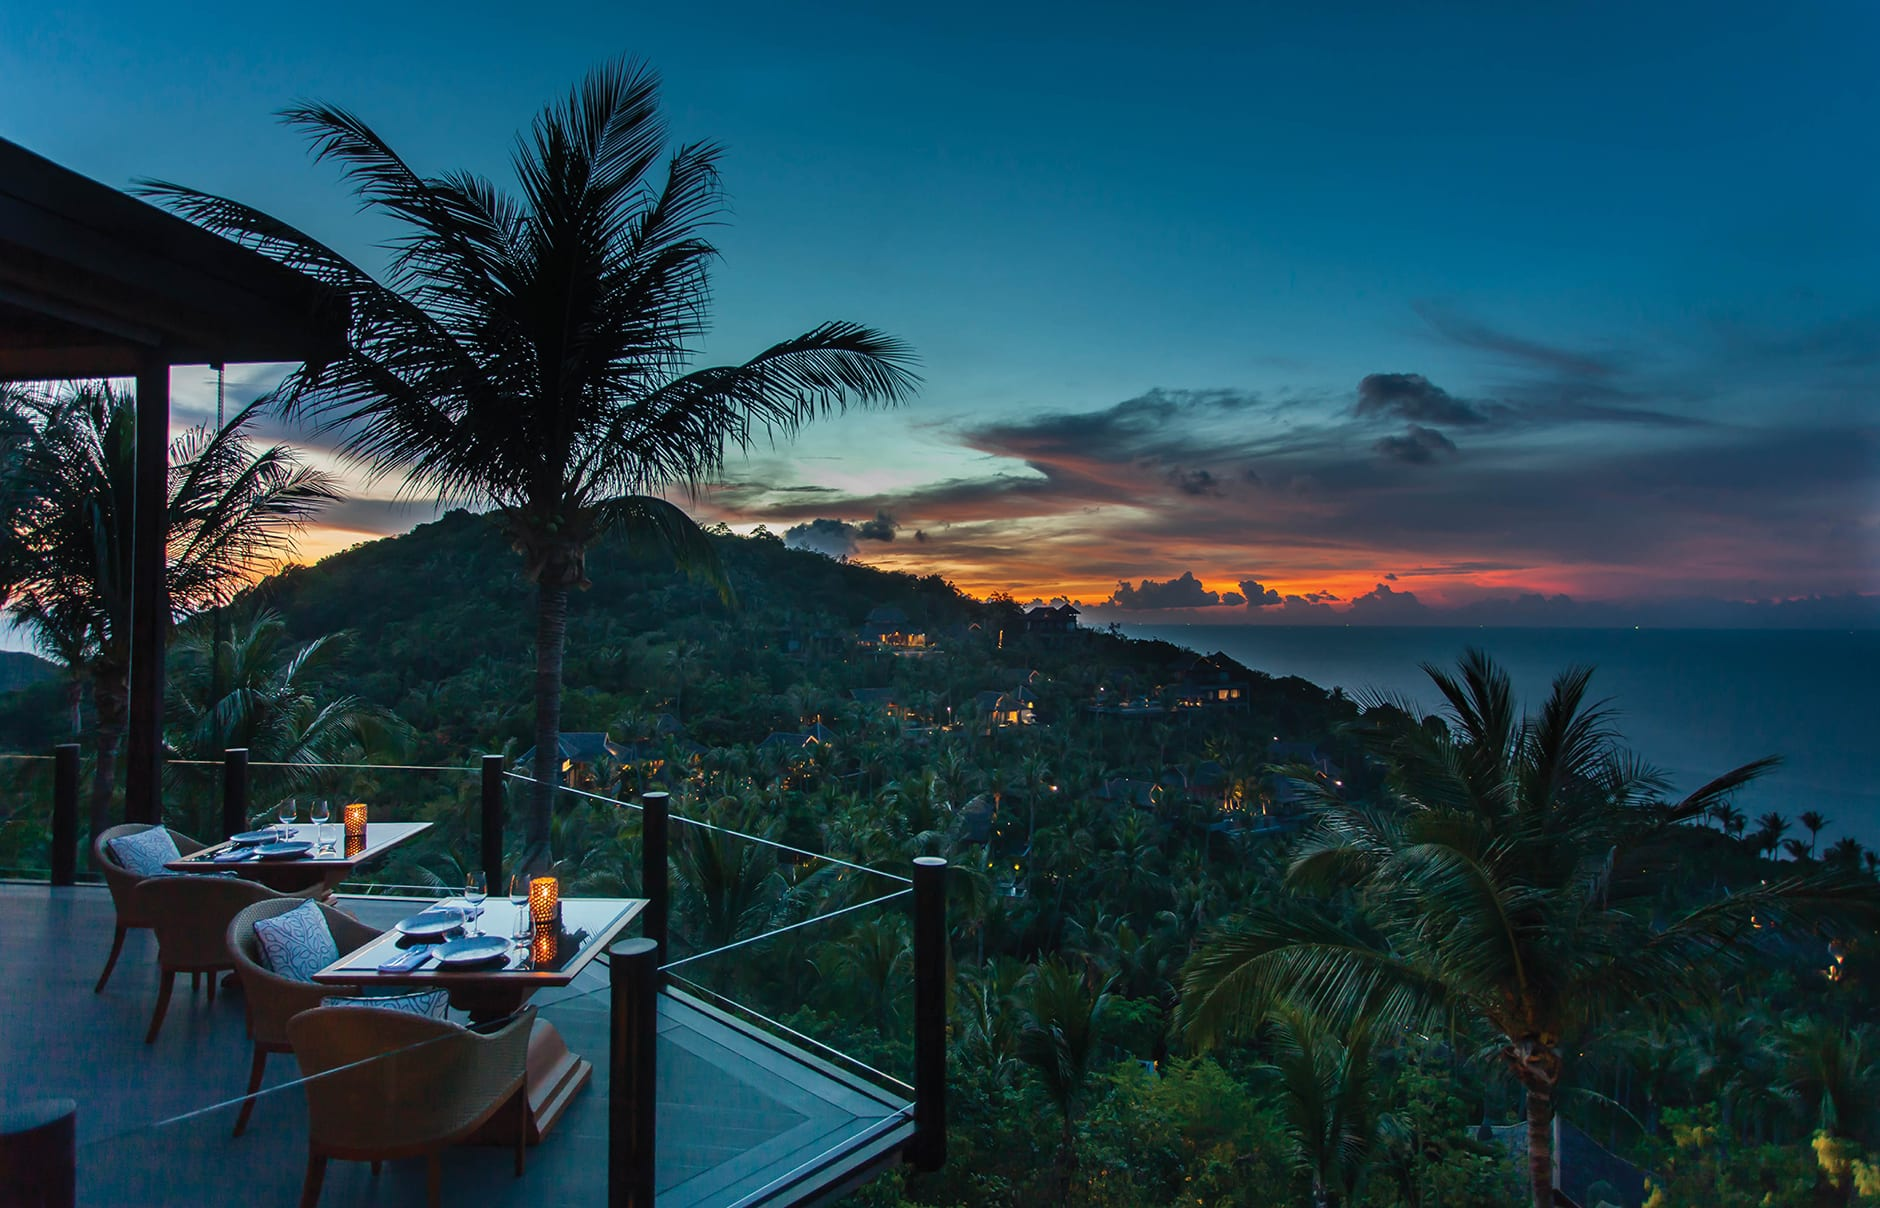 Four Seasons Resort Koh Samui, Thailand. Hotel Review by TravelPlusStyle. Photo © Four Seasons Hotels Limited